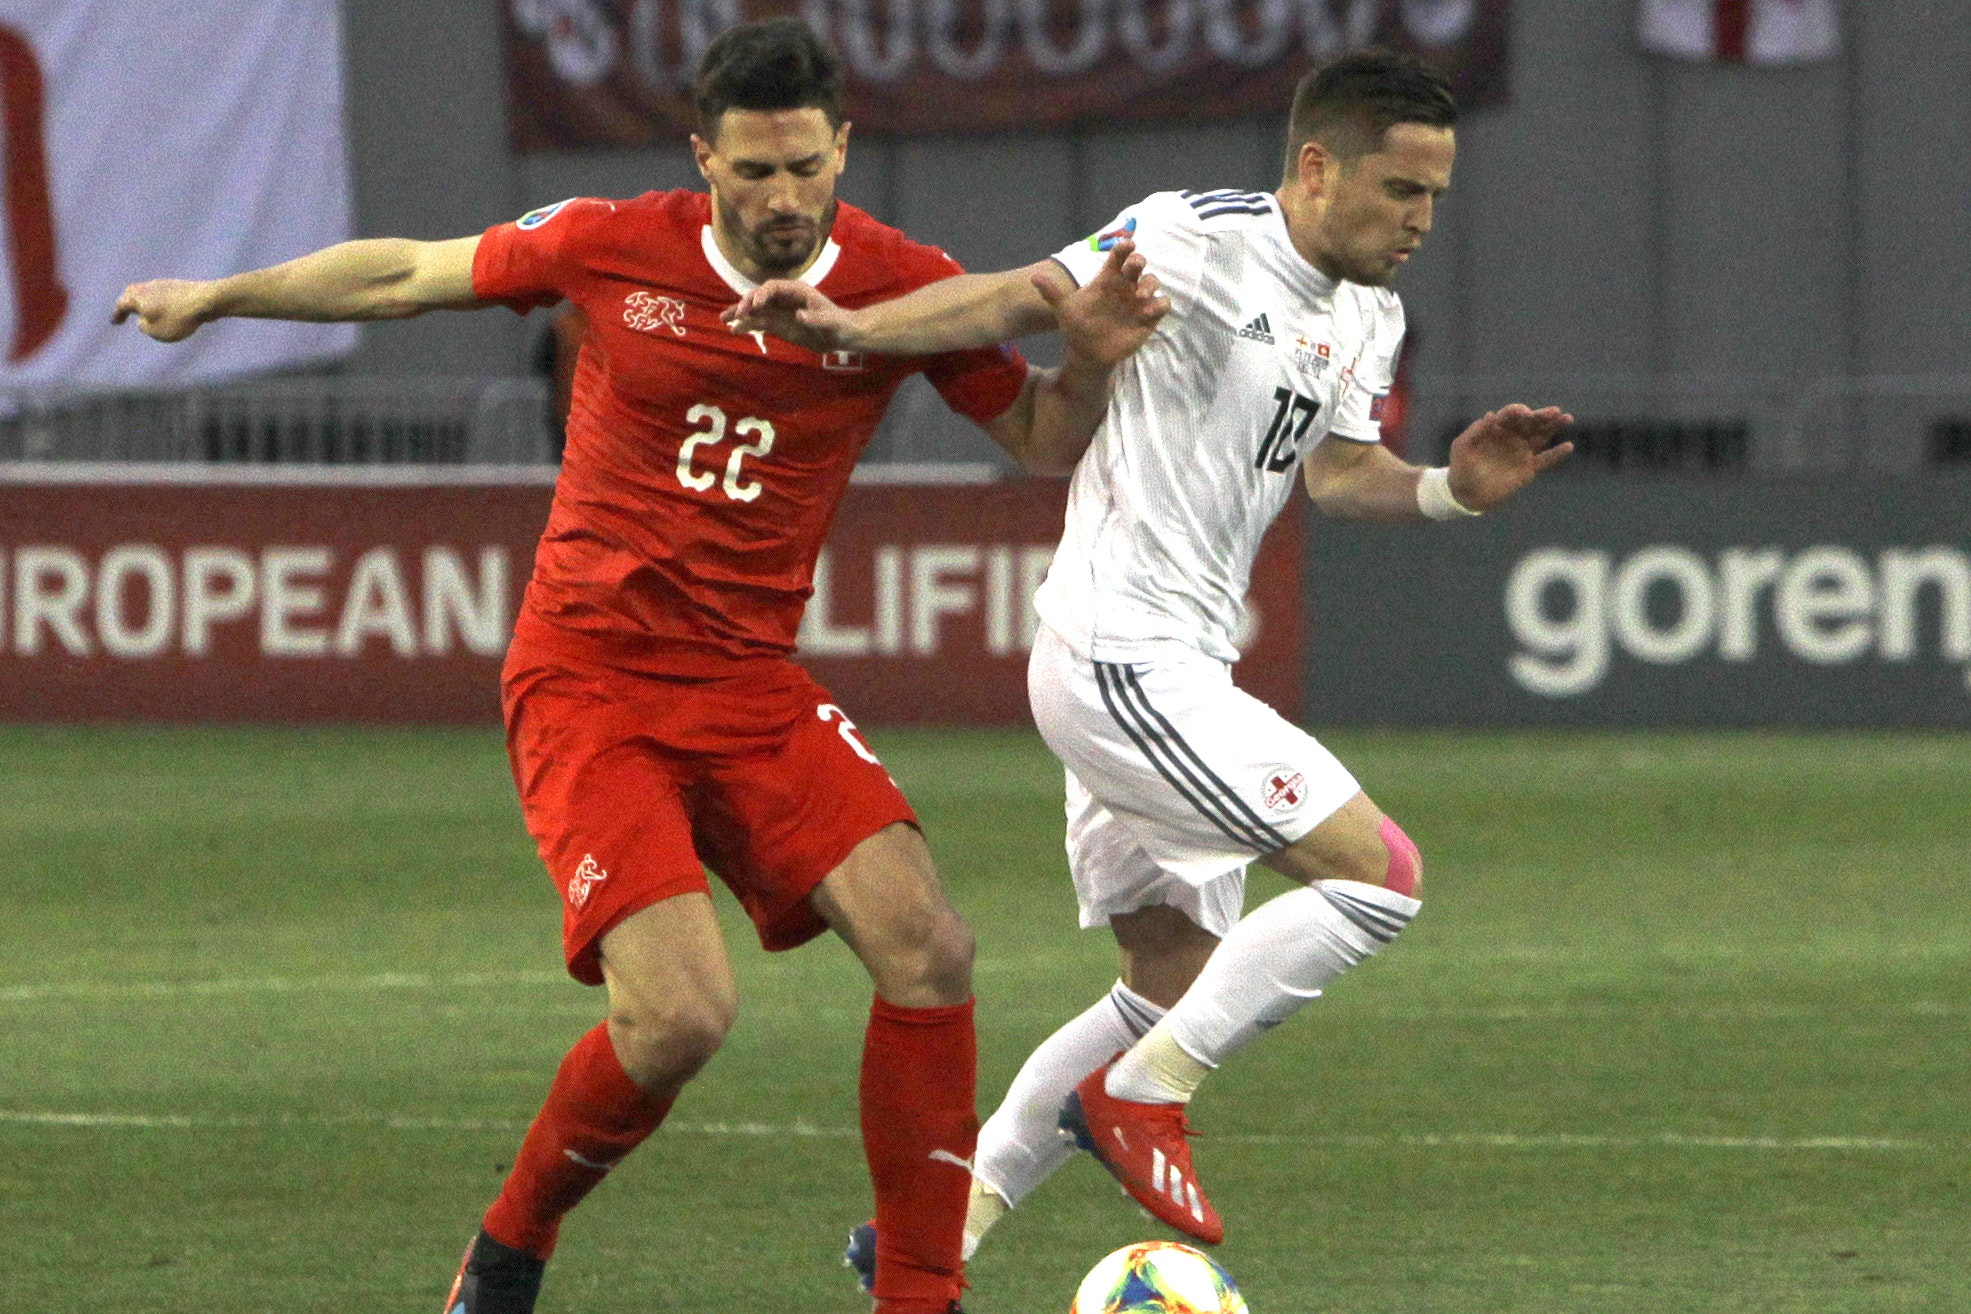 Switzerland's Fabian Schar, left, and Georgia's Jano Ananidze, who is understood to have helped Schar recover after he was knocked ou